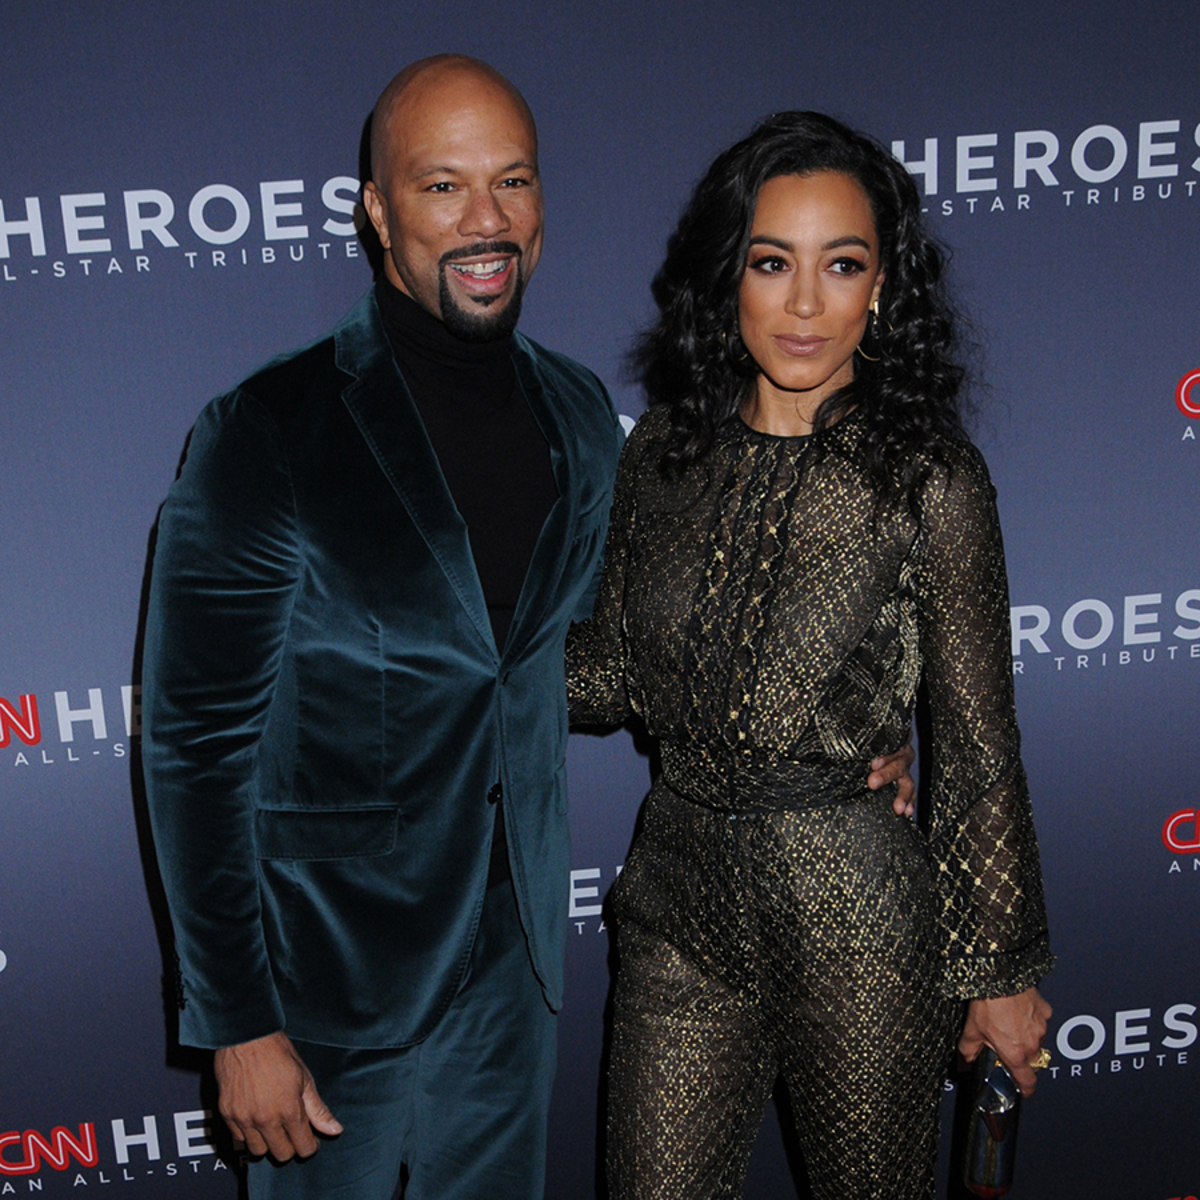 Angela and Common while attending an event